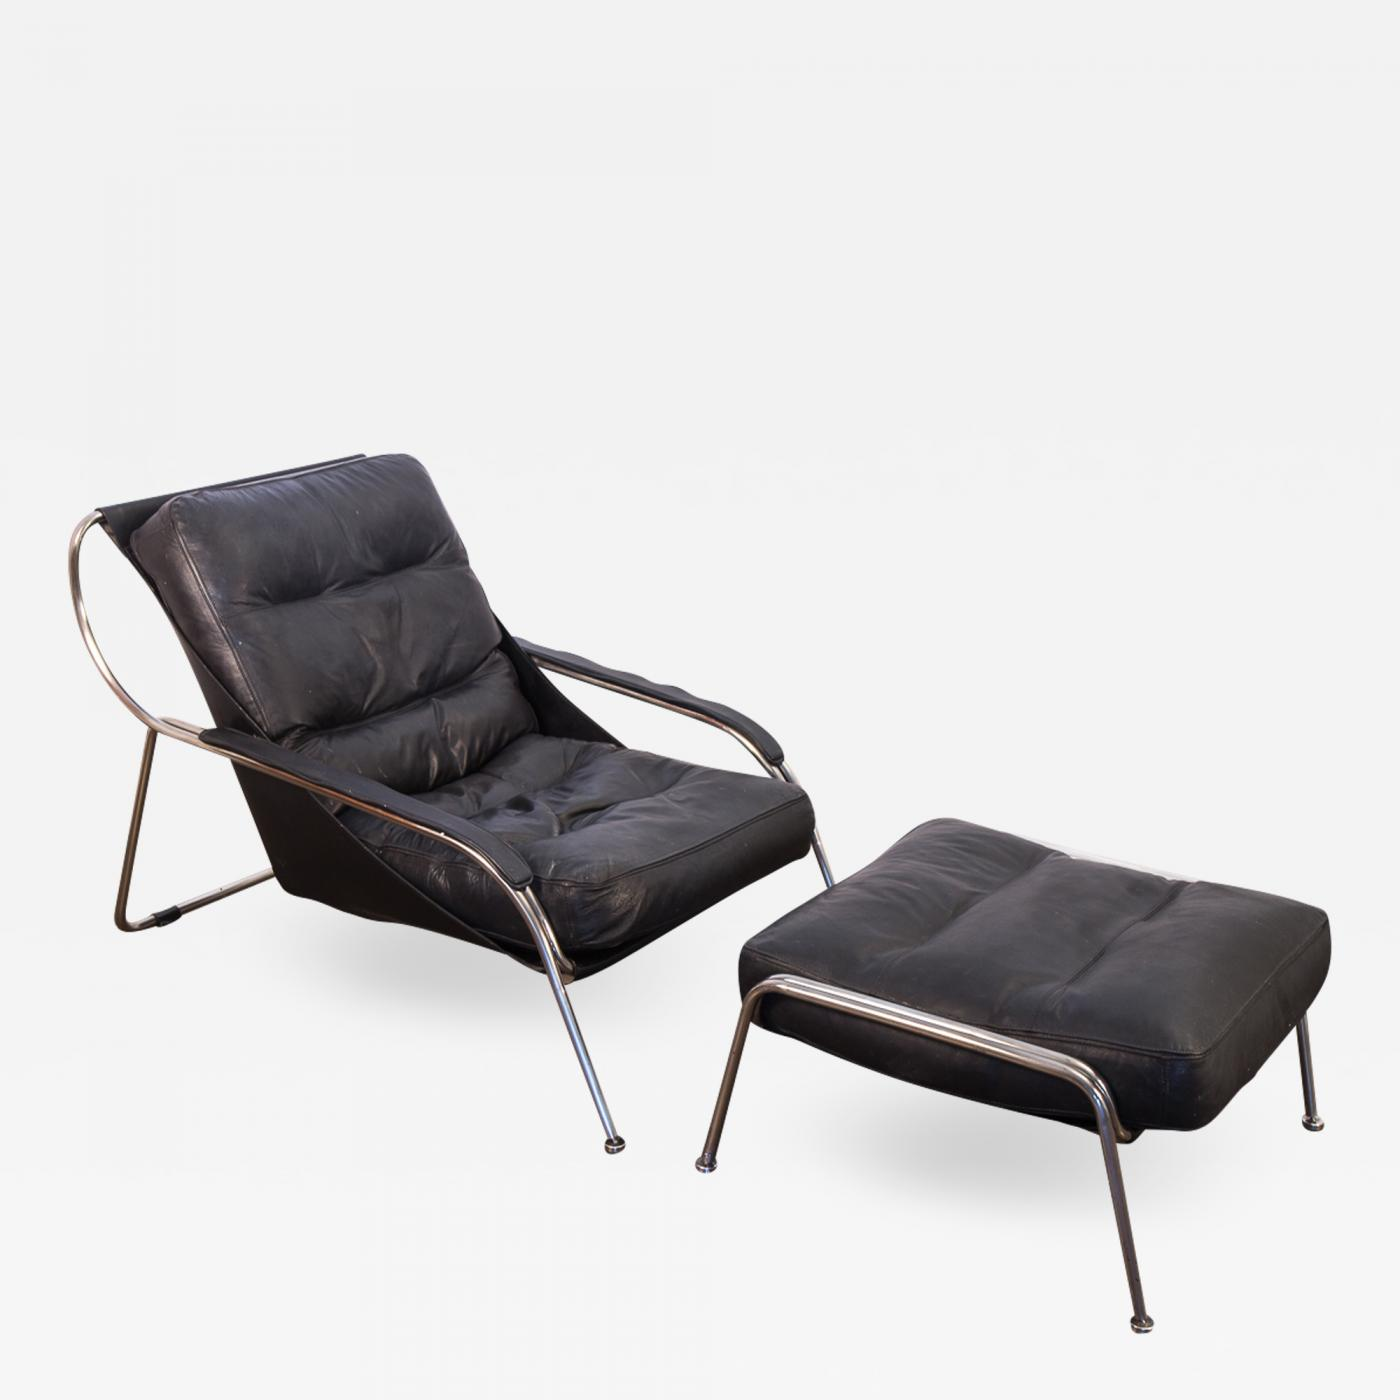 Awesome Marco Zanuso Maggiolina Lounge Chair And Ottoman By Marco Zanuso Ncnpc Chair Design For Home Ncnpcorg